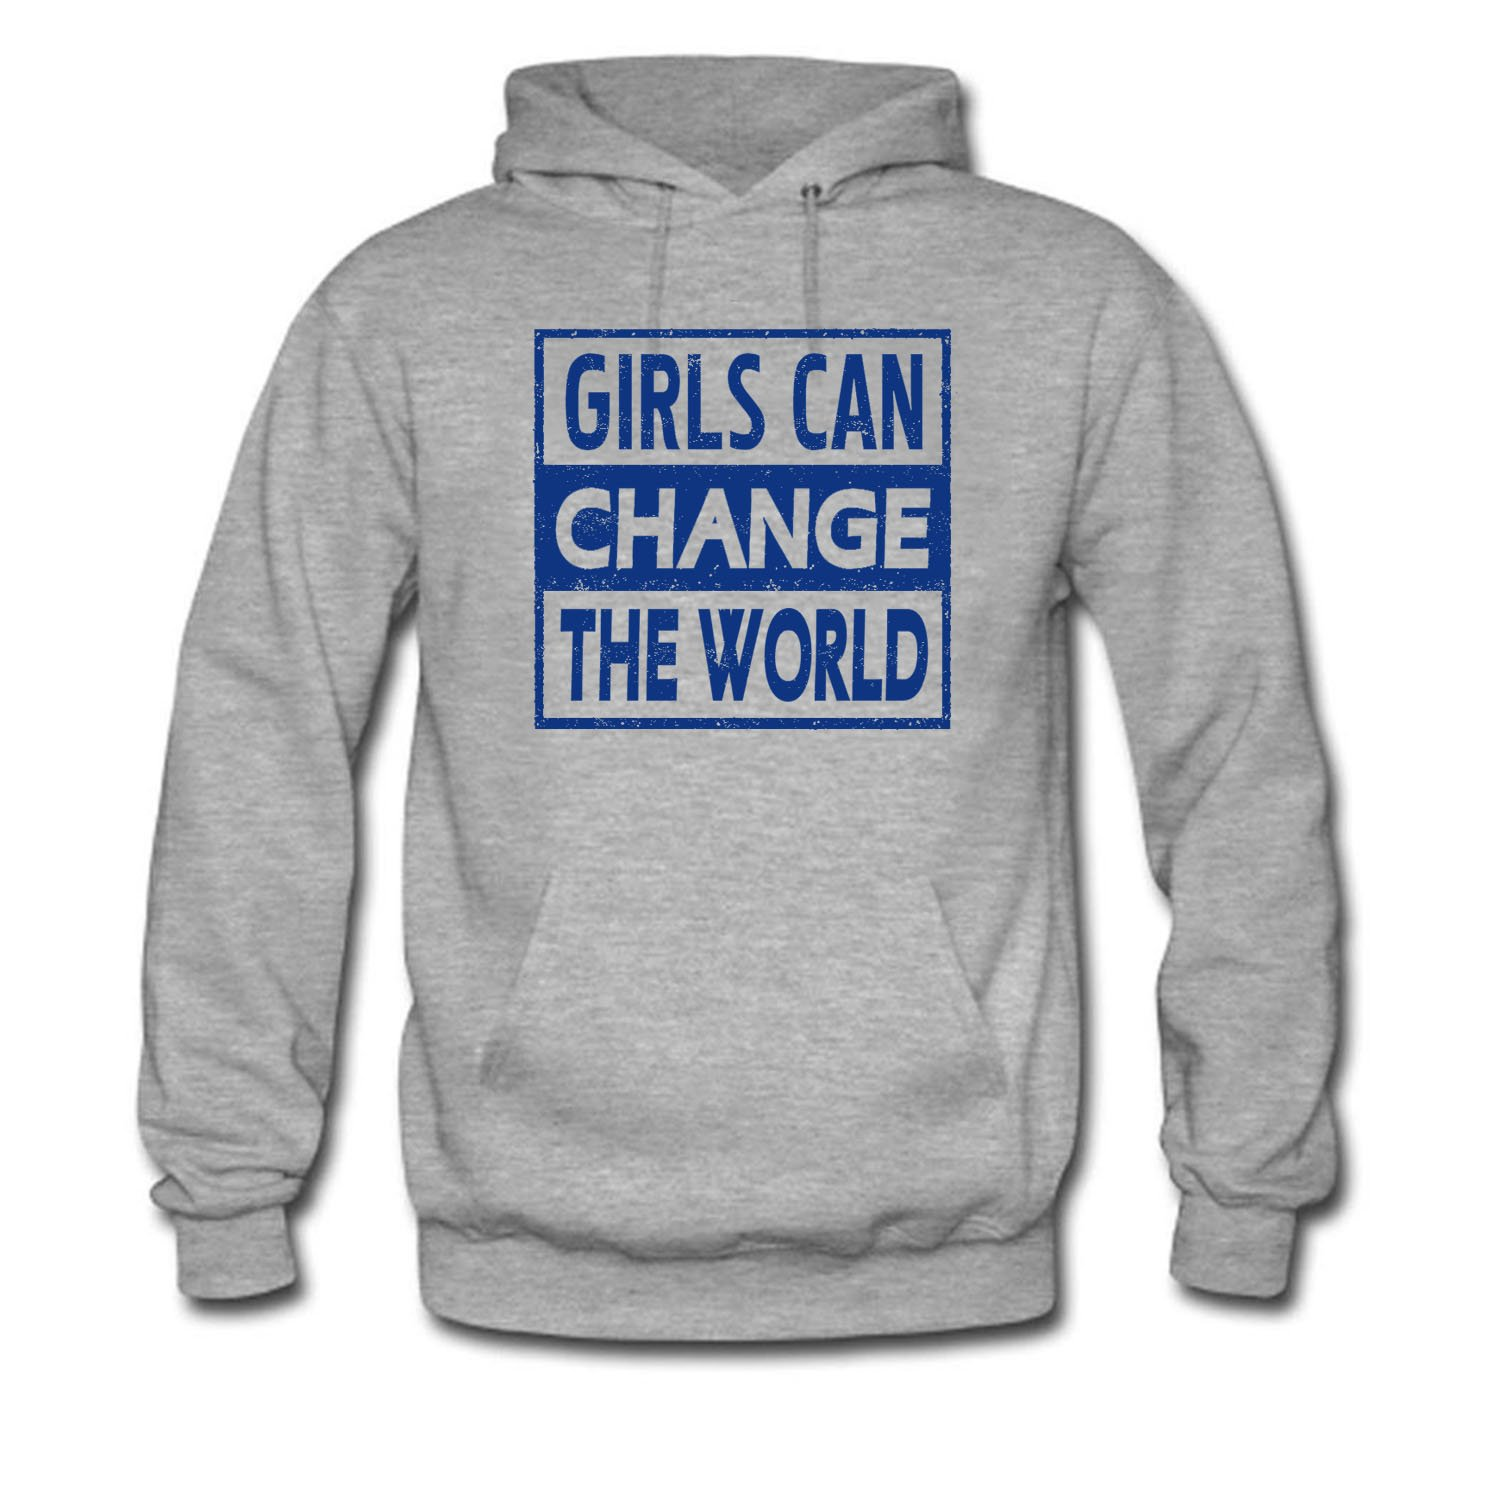 171194cc Amazon.com: ZWZHI Women's Girls can Change the World Long Sleeve Hoodie:  Clothing